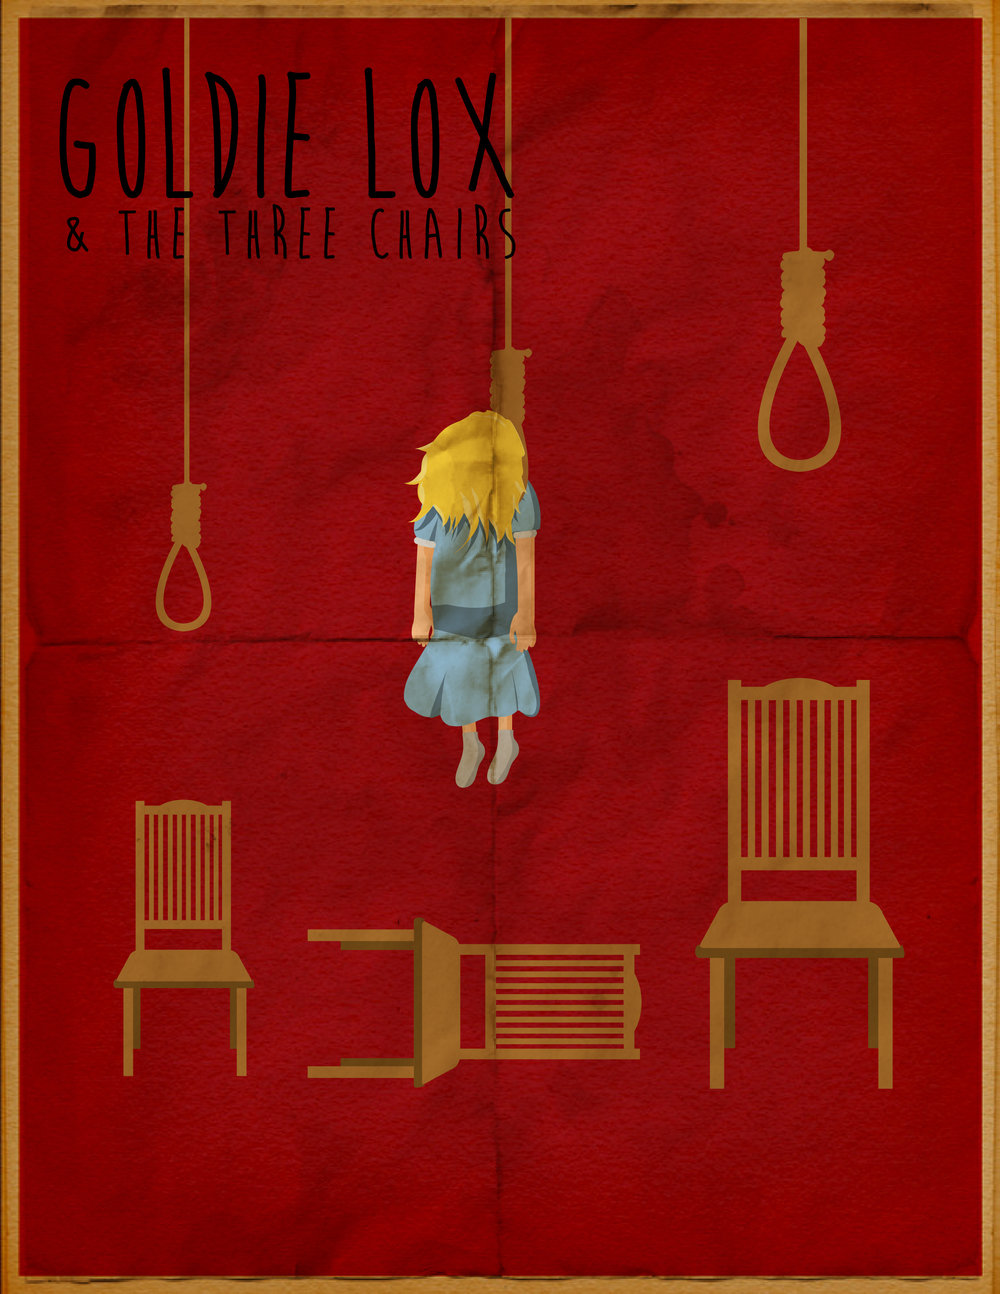 """GOLDIE LOX & THE THREE CHAIRS"""